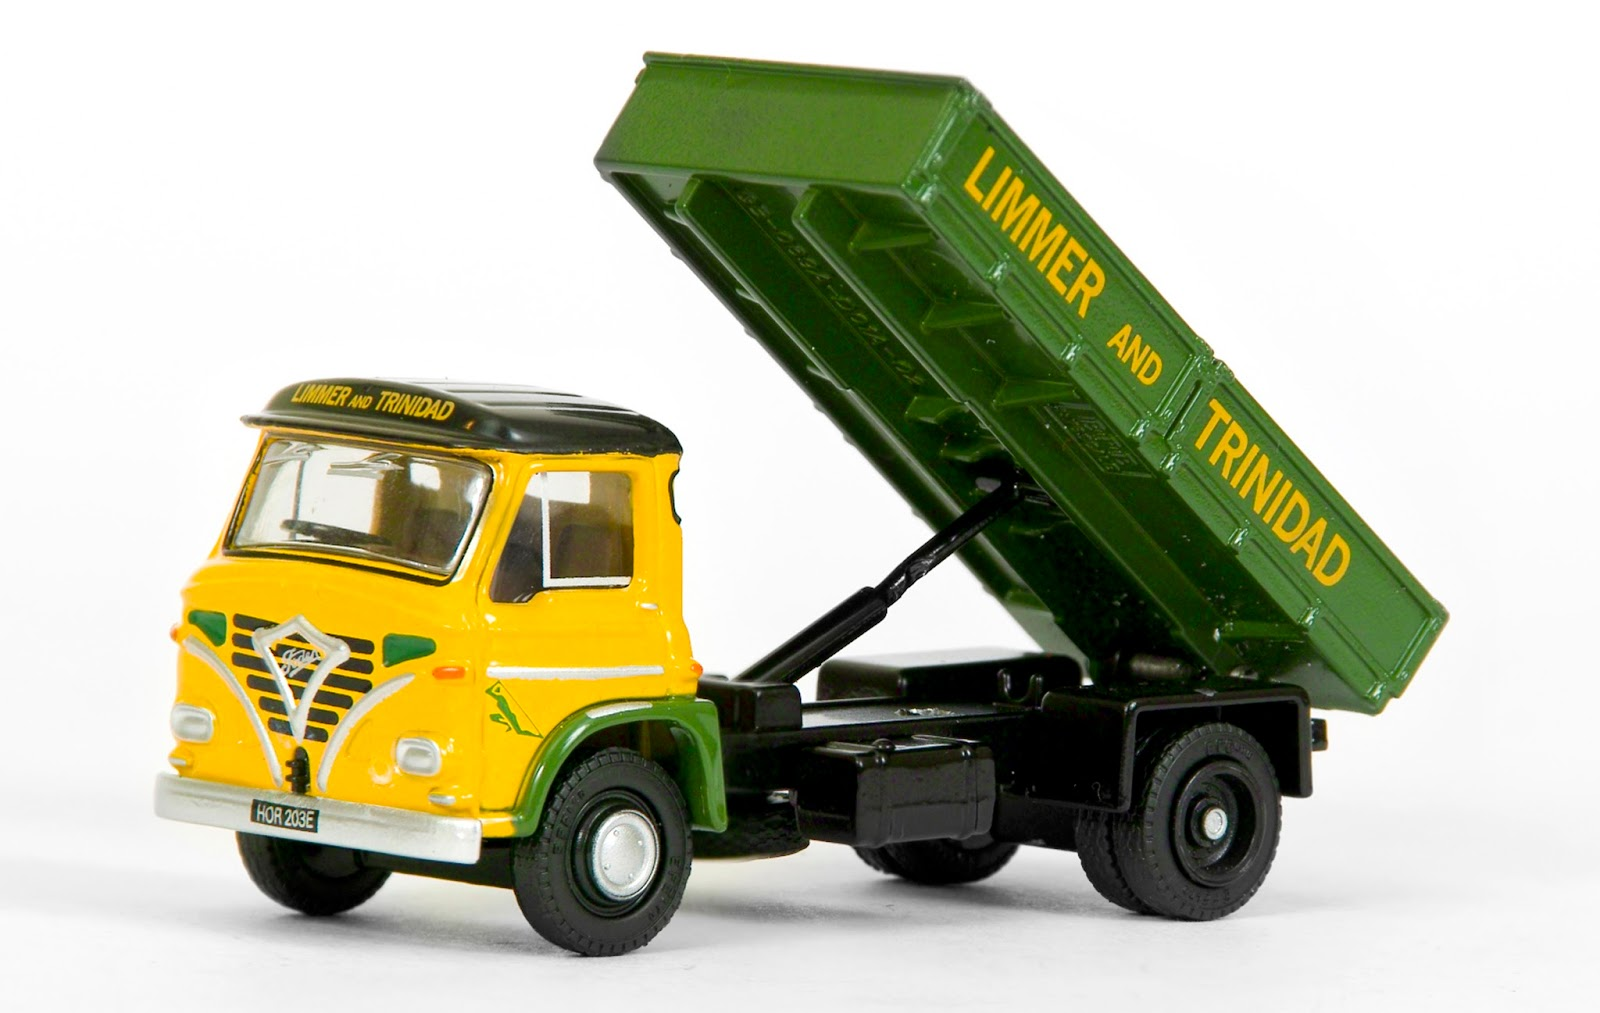 EFE 39001 - Foden S24 Short 2 Axle Tipper - Limmer & Trinidad The first in a new casting variation sees restored a Foden S24 fitted with our short 2 axle tipper body. Our model depicts the preserved HOR 203E, working in the livery of Limmer & Trinidad a long established London based company, supplying Tarmac for Britain's roads. RRP £32.50